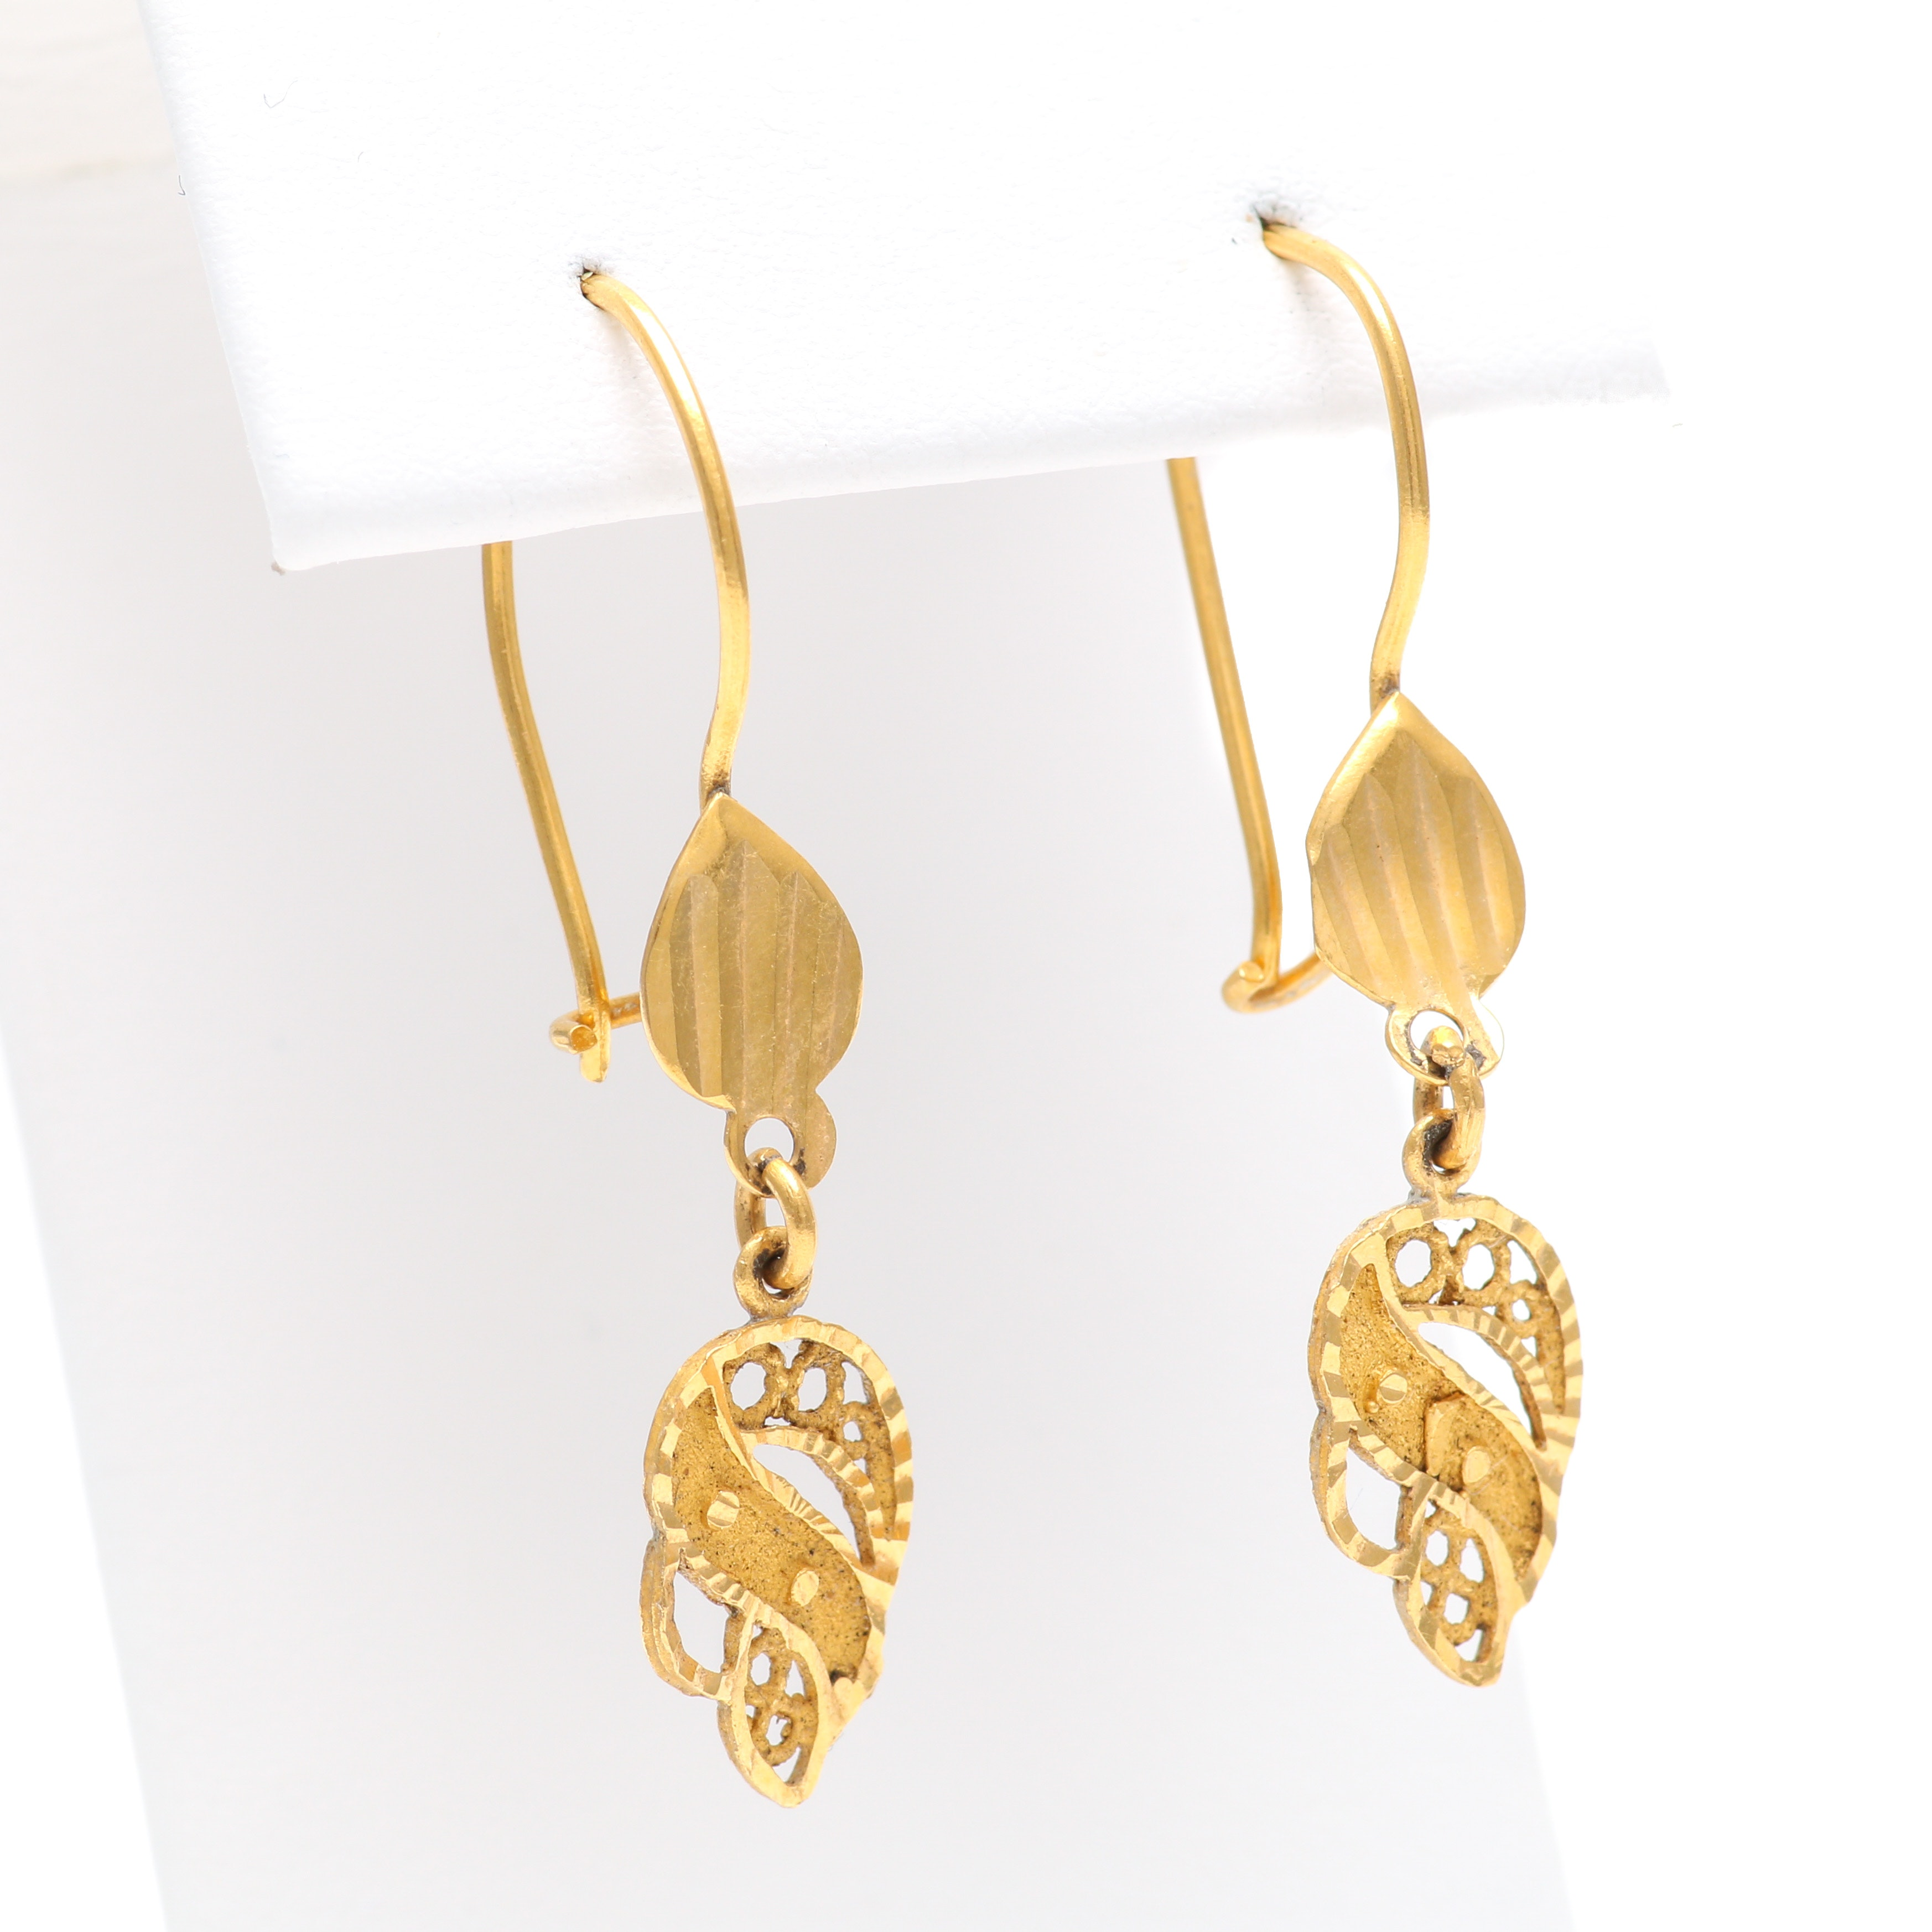 22K Yellow Gold Satin and Polished Openwork Earrings